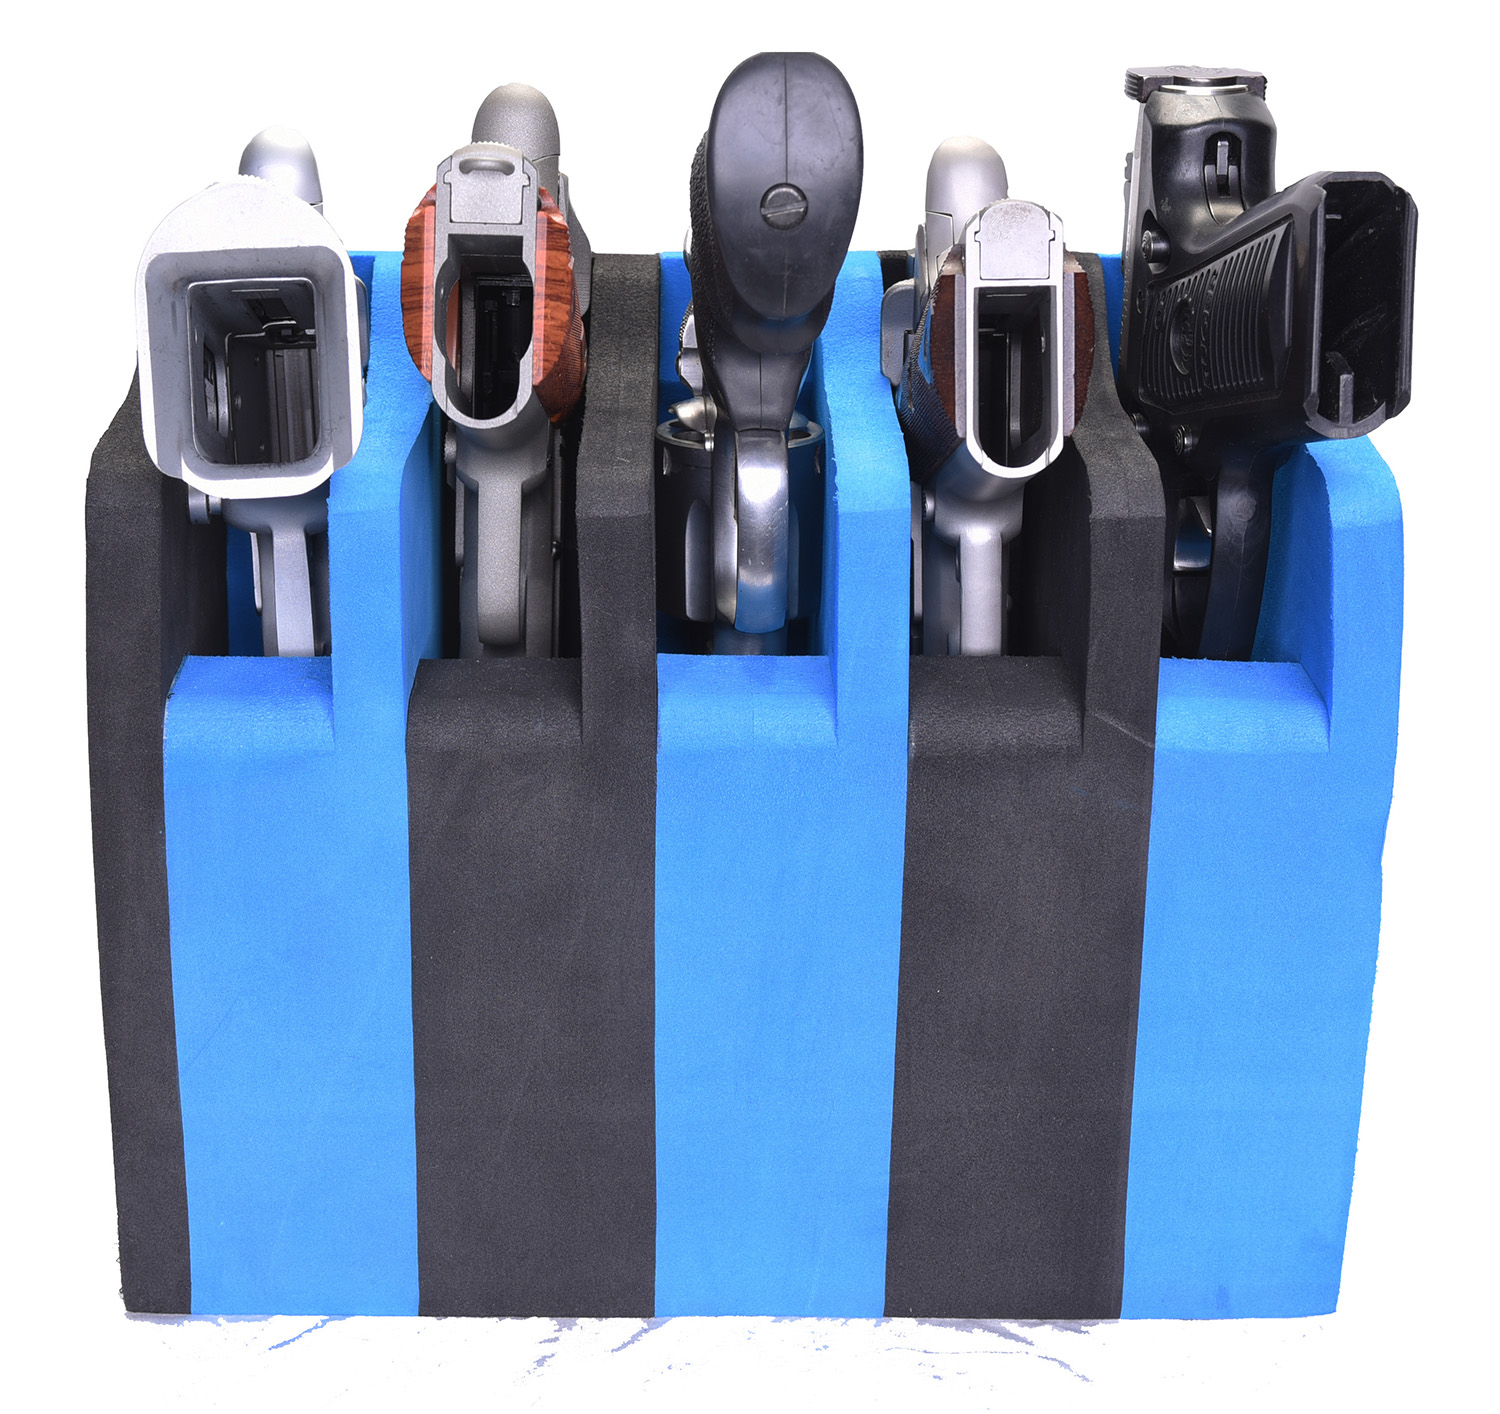 G.P.S. 5 Pistol Soft Cradle - Black/Blue